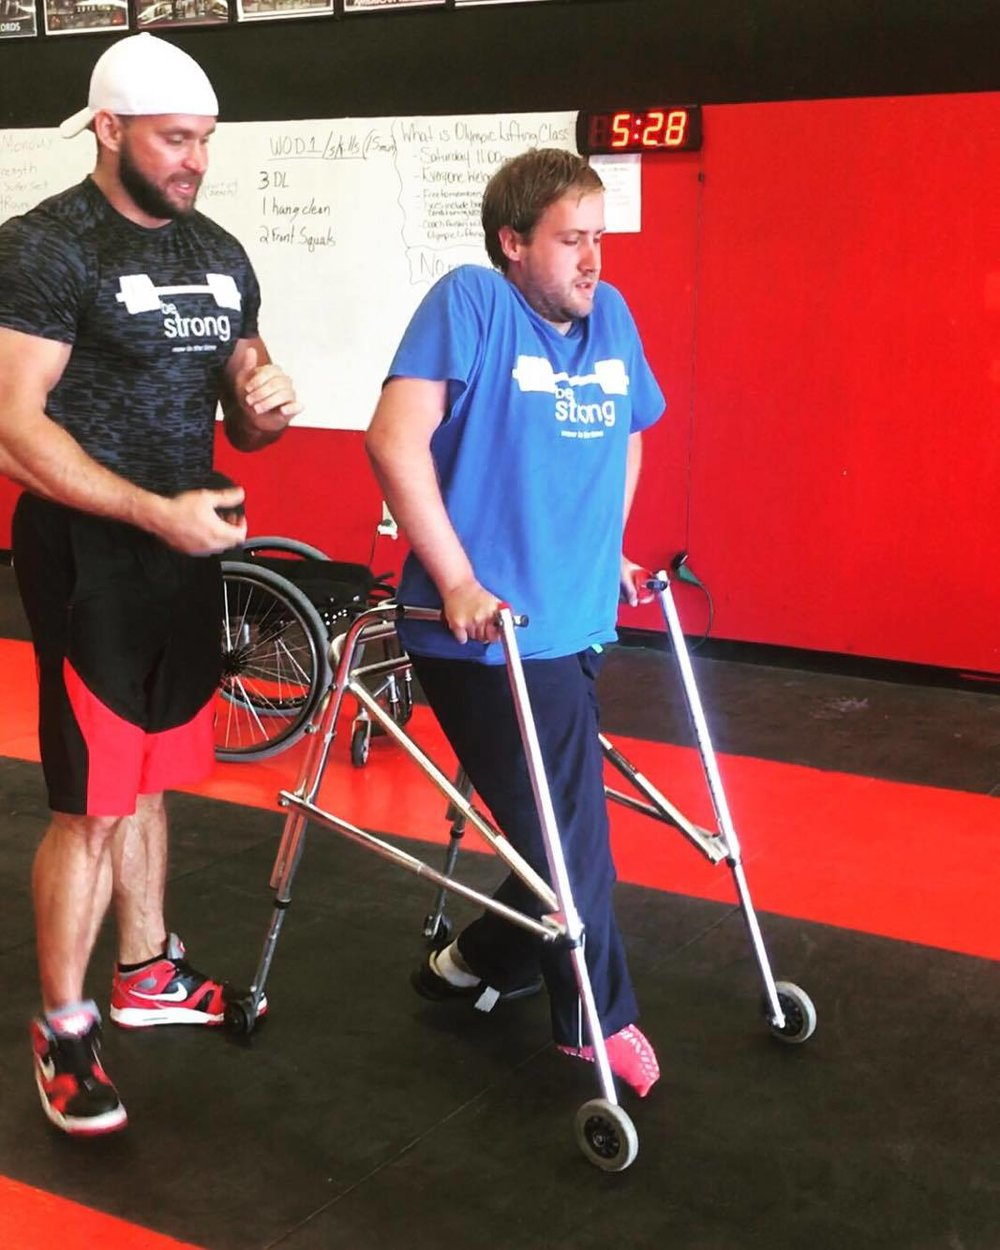 I know now, with the correct training and dedication from Drew and coaches at Be Strong, there is nothing I cannot do. Click to see Matt's story.